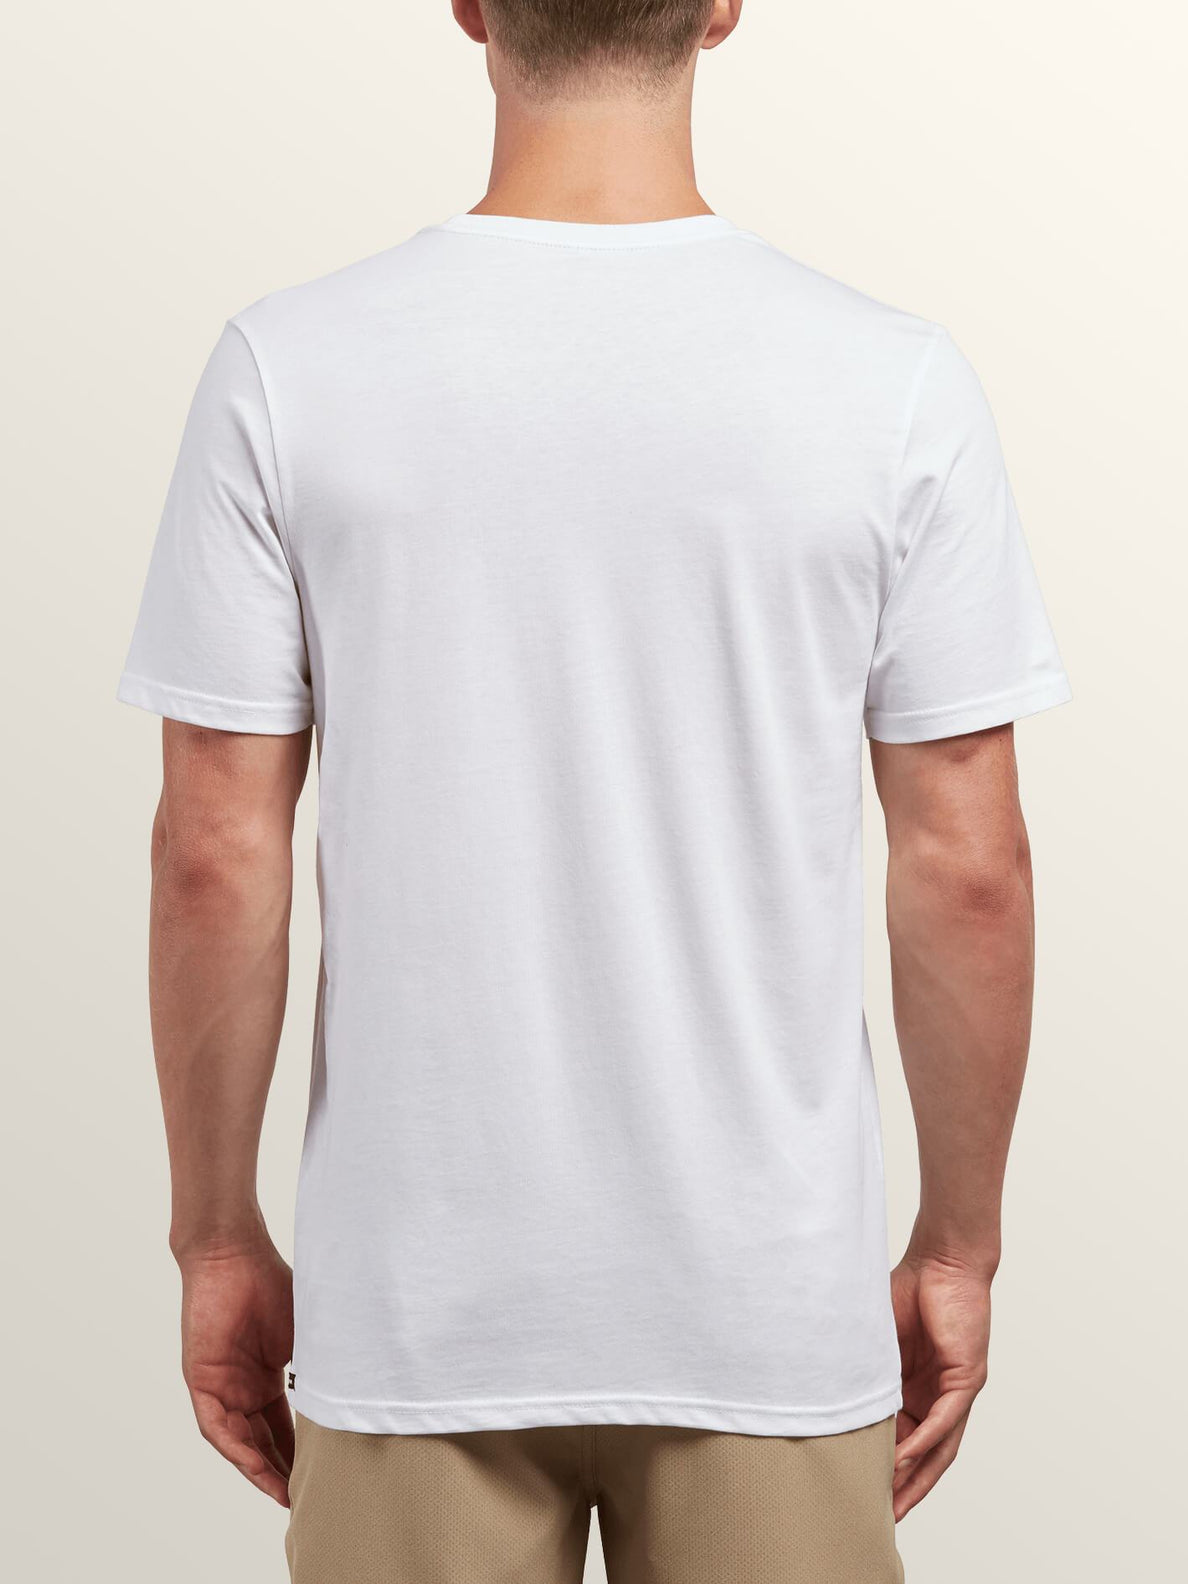 Cover Short Sleeve Tee In White, Back View